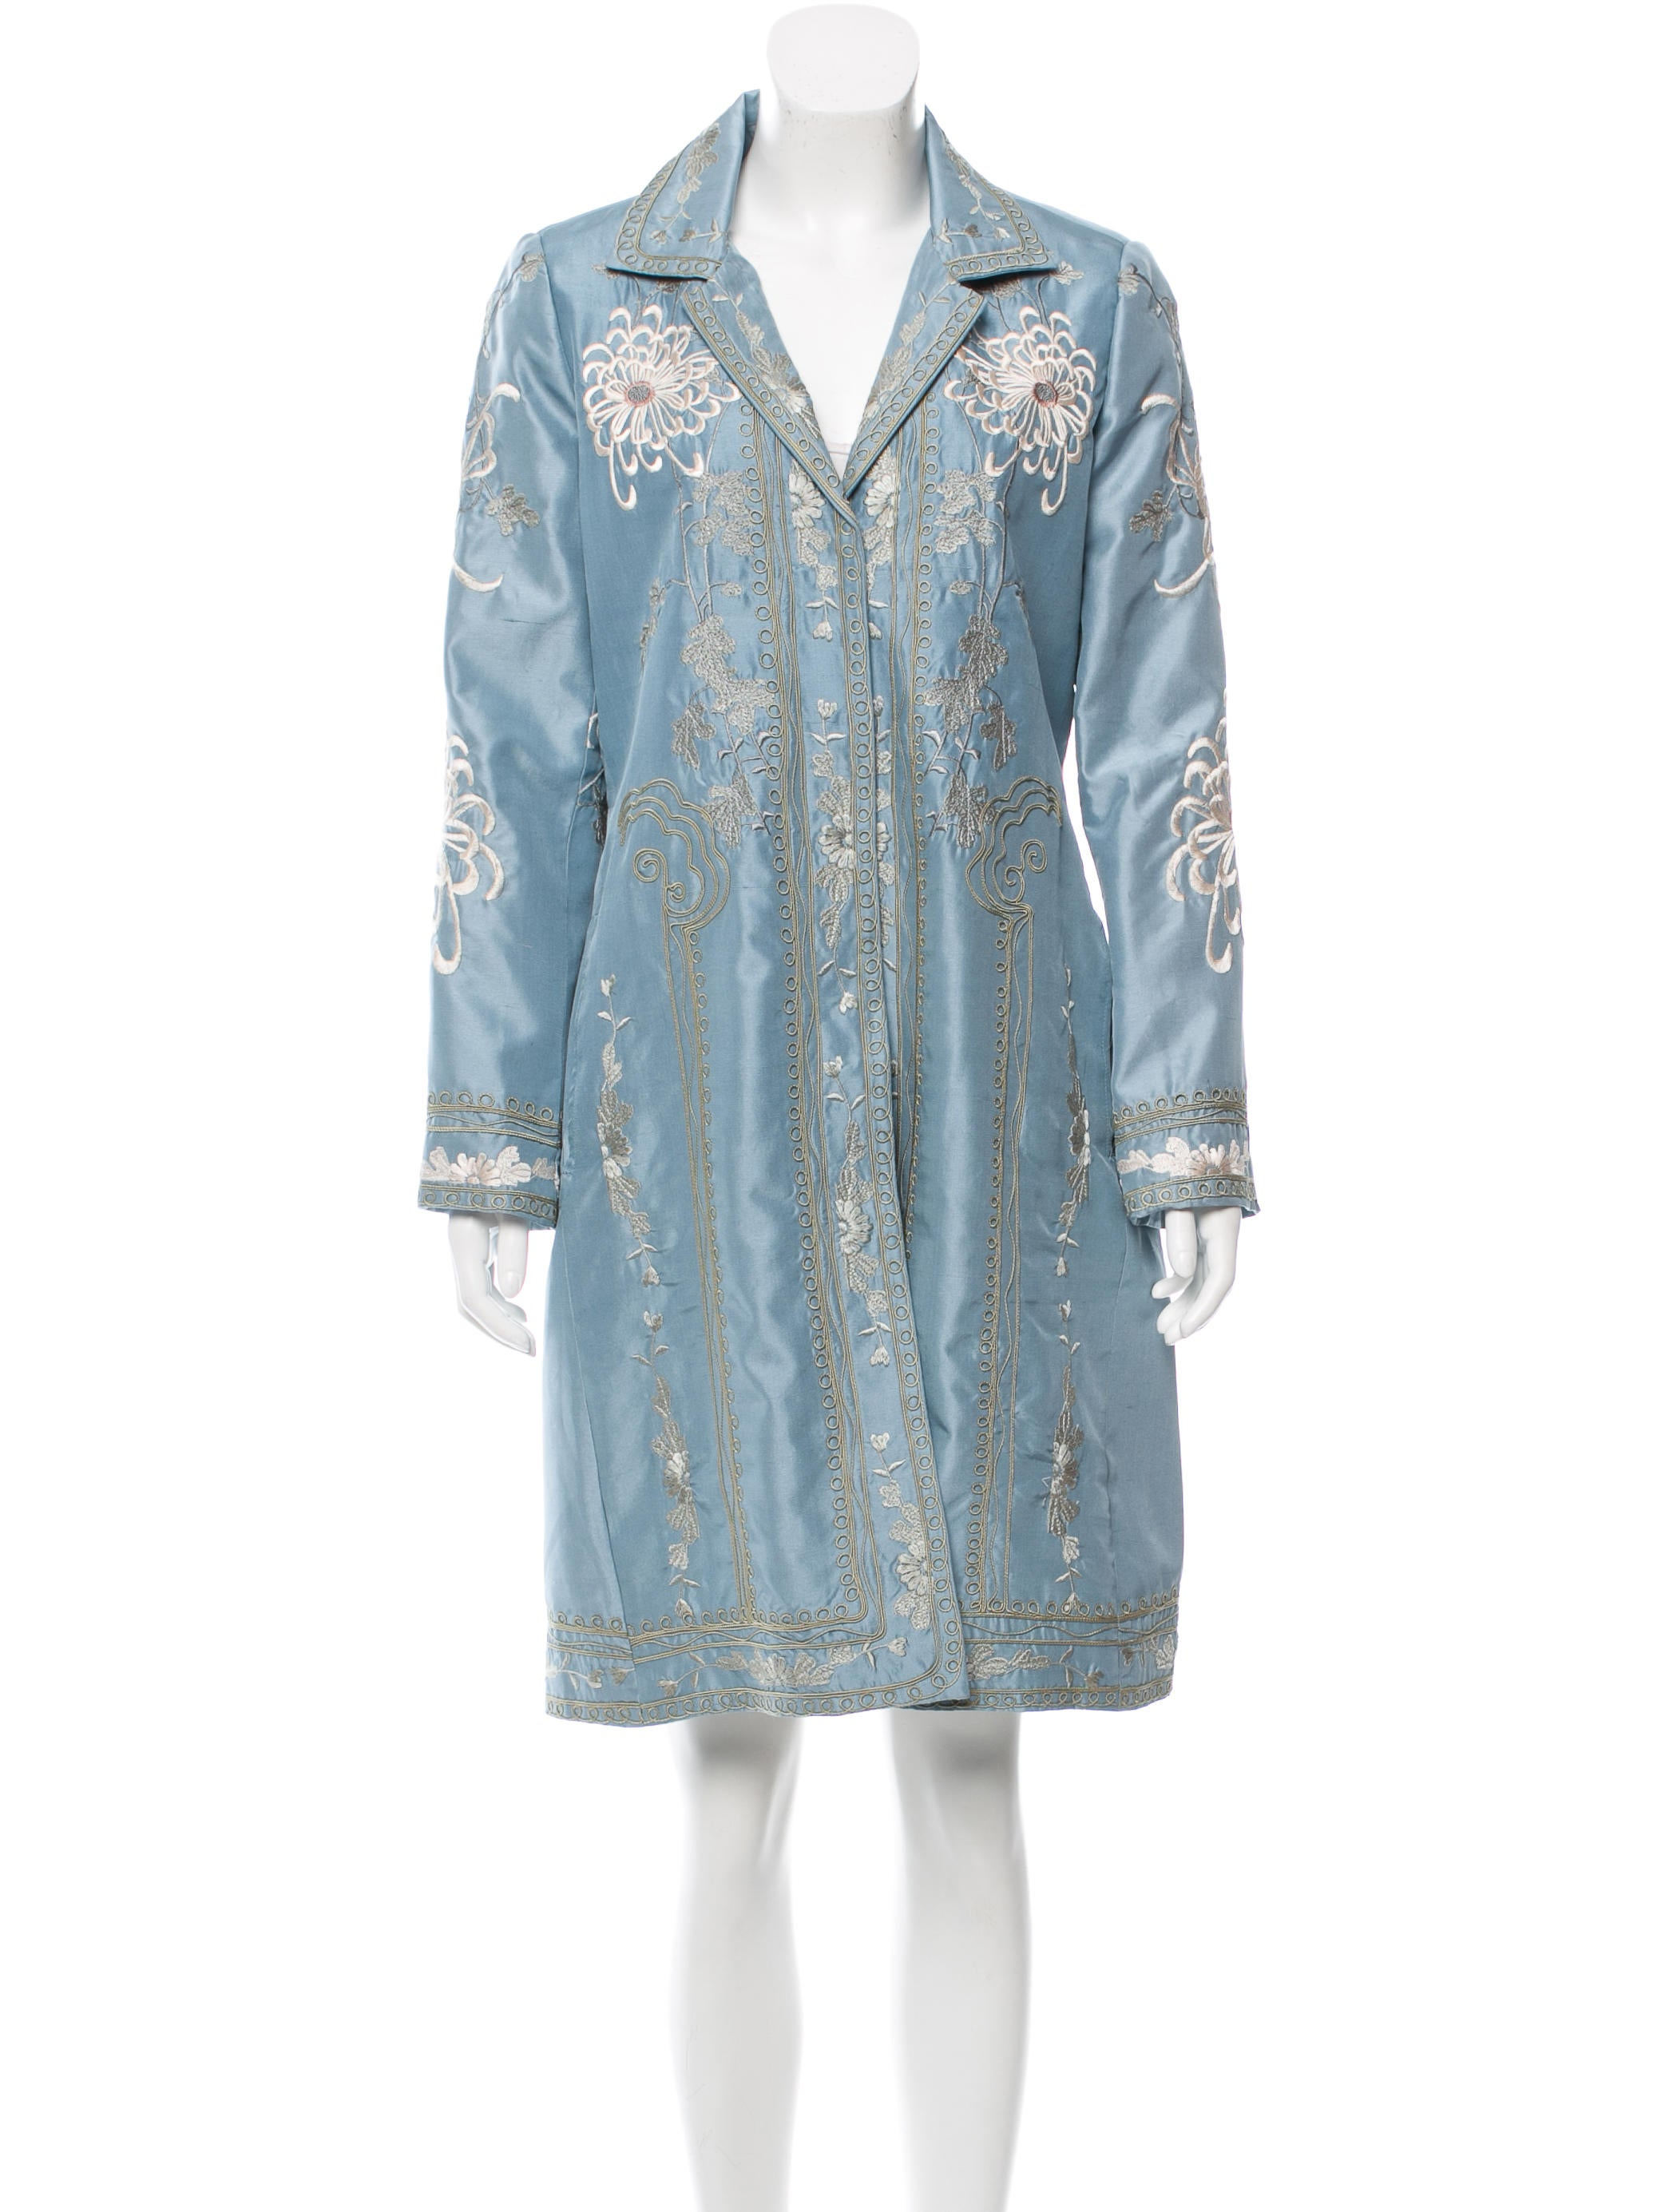 Biyan Embroidered Silk Jacket - Clothing - BIY20011 | The RealReal